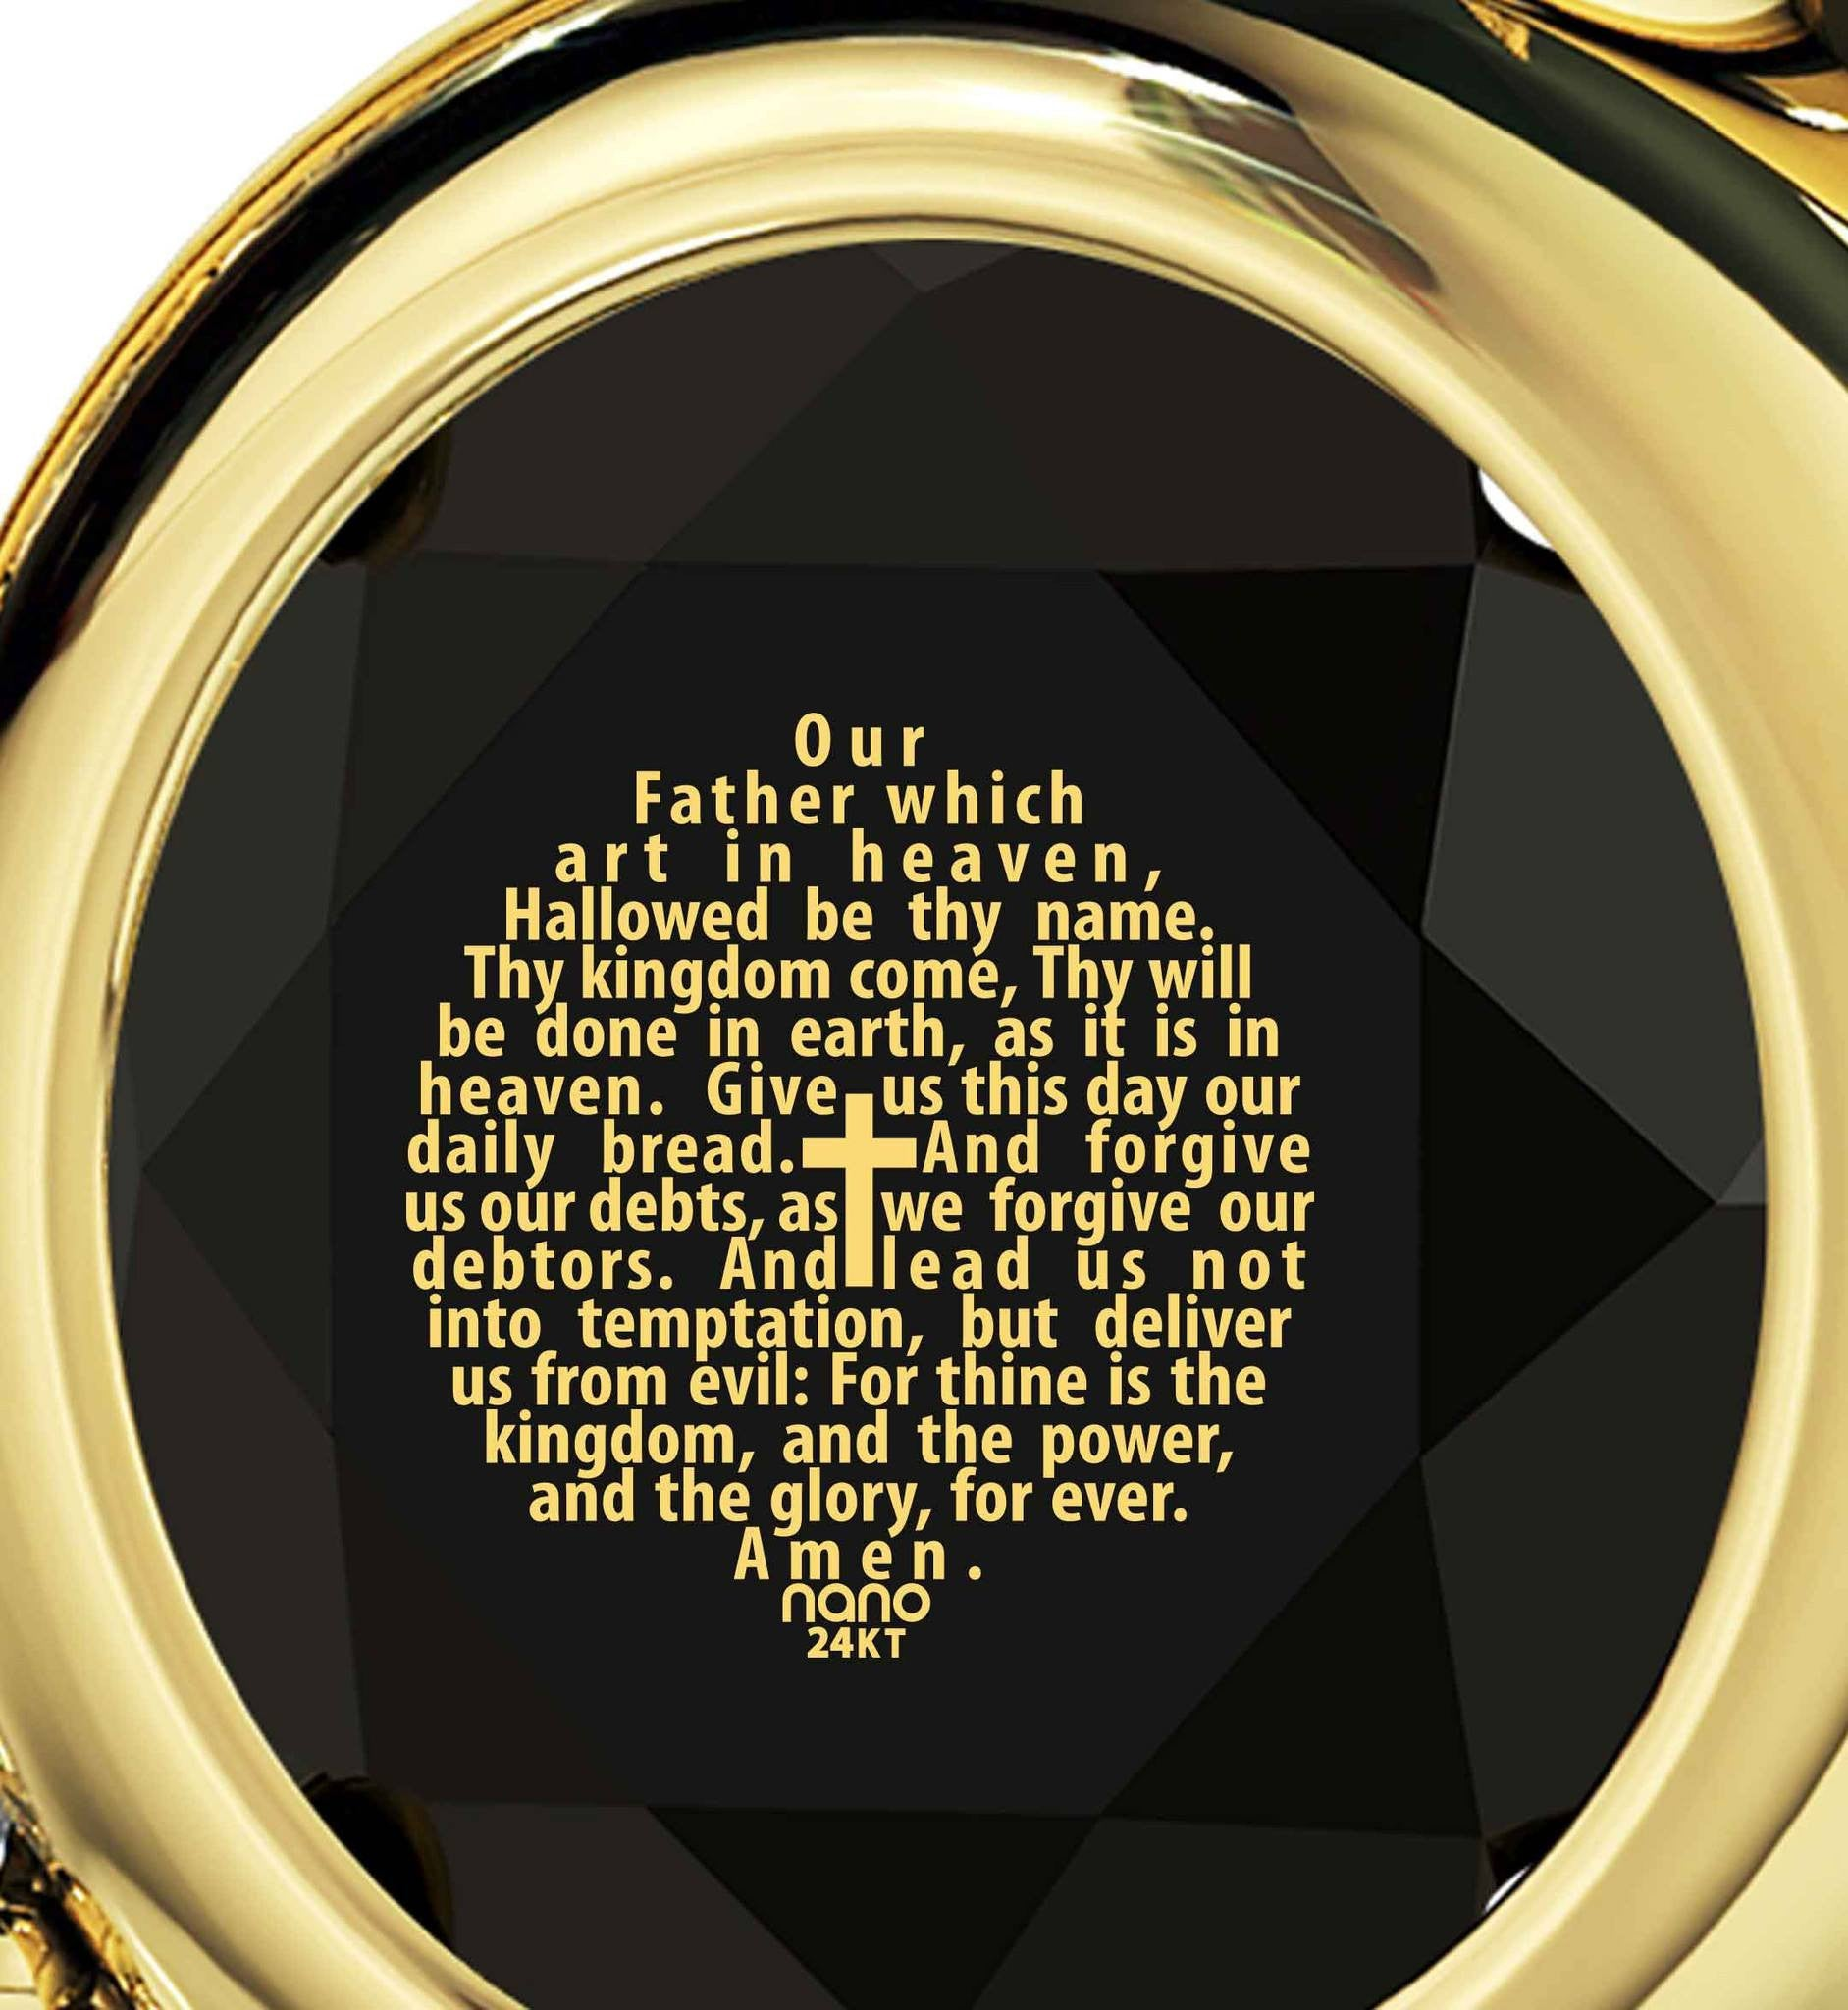 Lord's Prayer in 24k Imprint, Good Presents for Mom, Gold Jewelry for Women, Black Stone Necklace